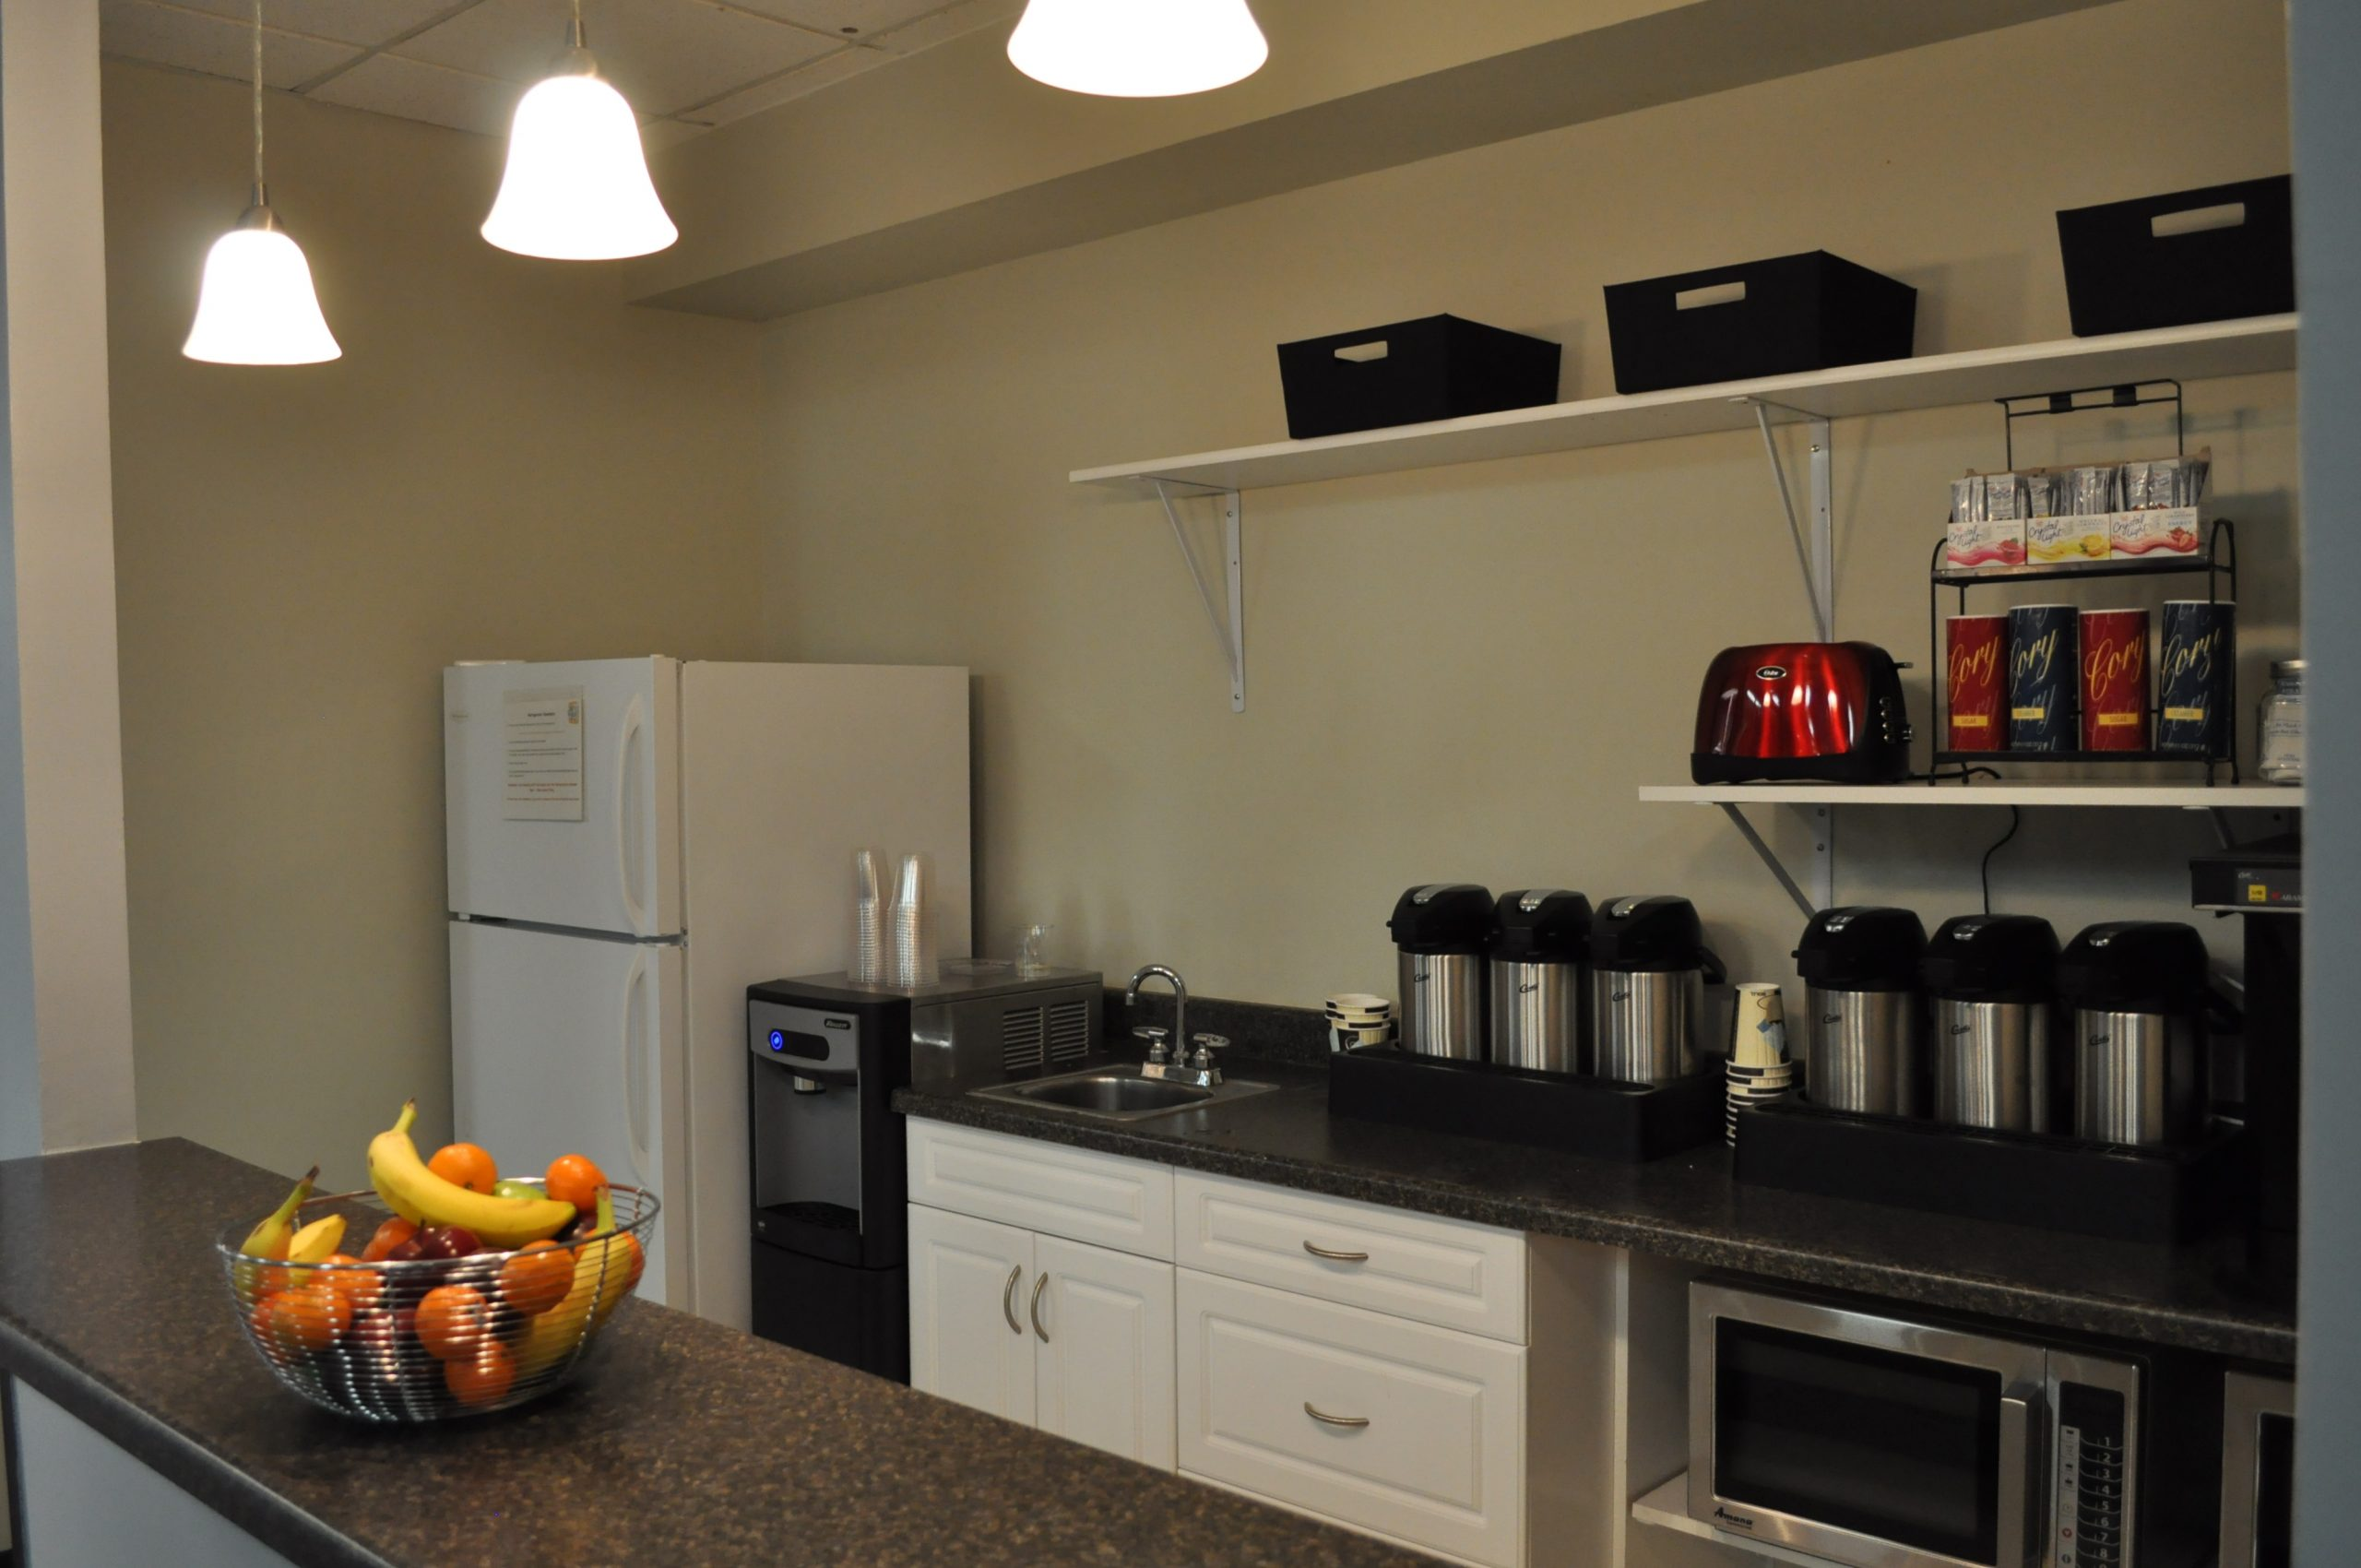 The kitchen facilities at the Open Cloud Academy.